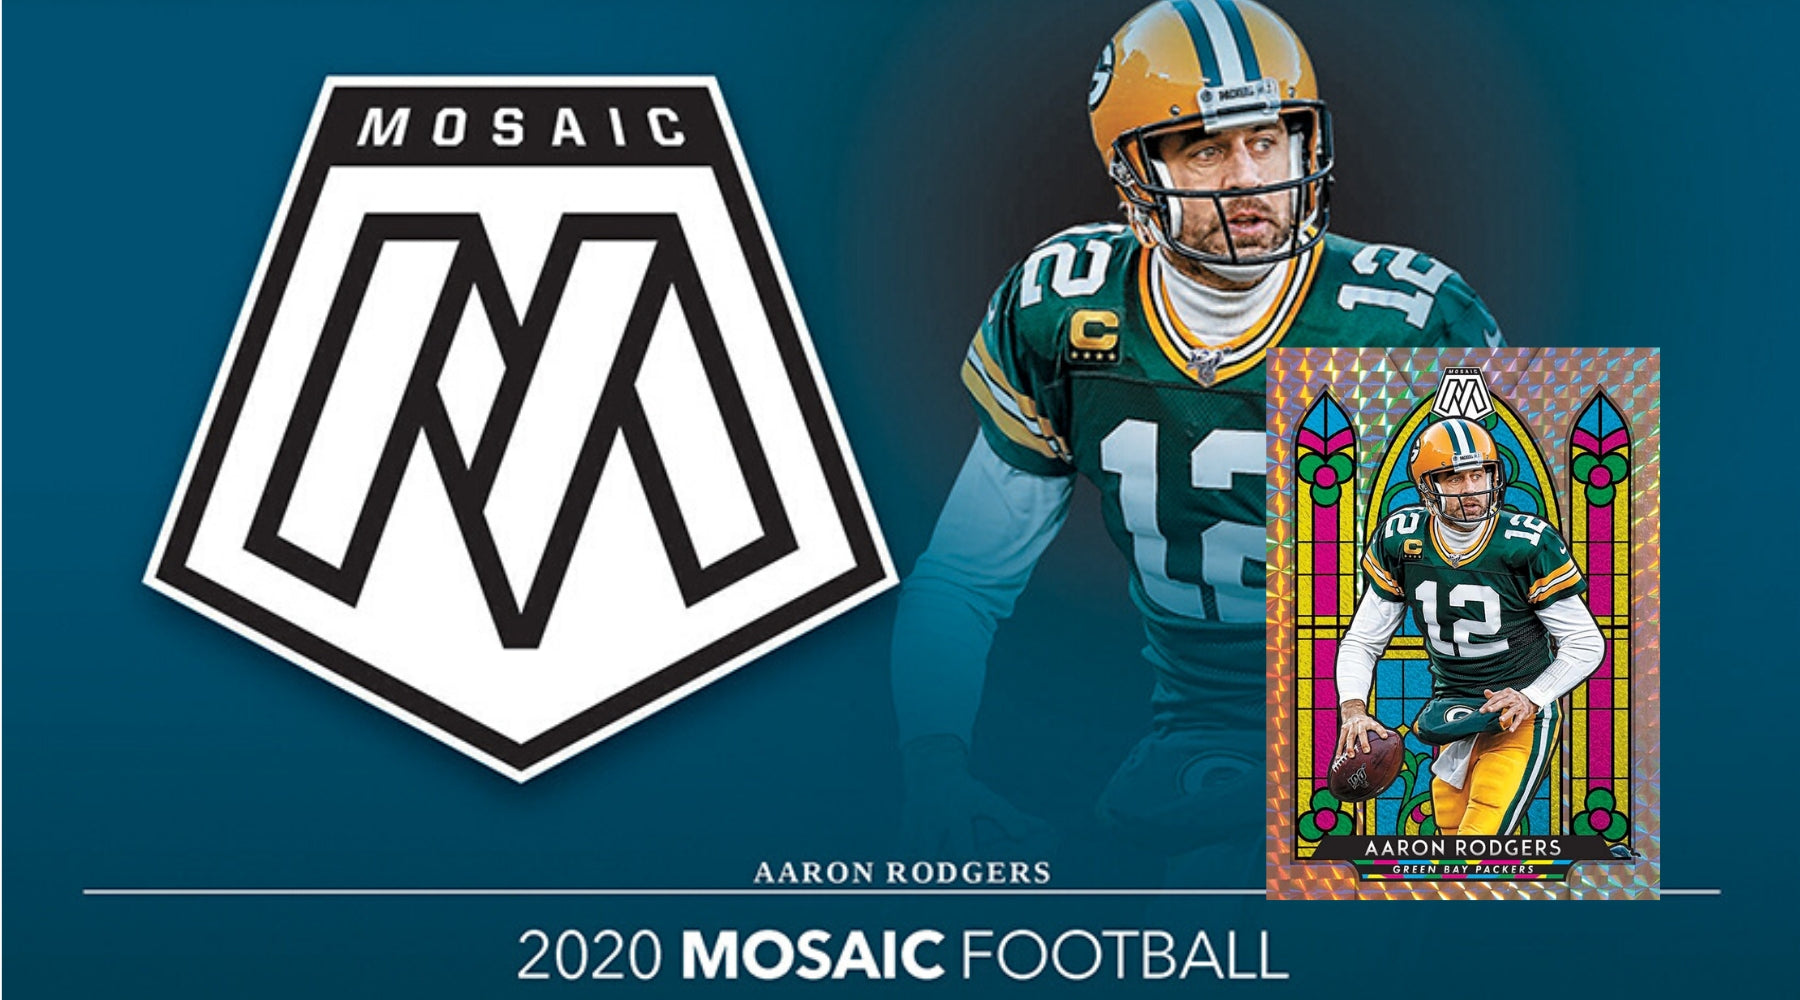 2020 Panini Mosaic Football Reveals Touch Down Masters!